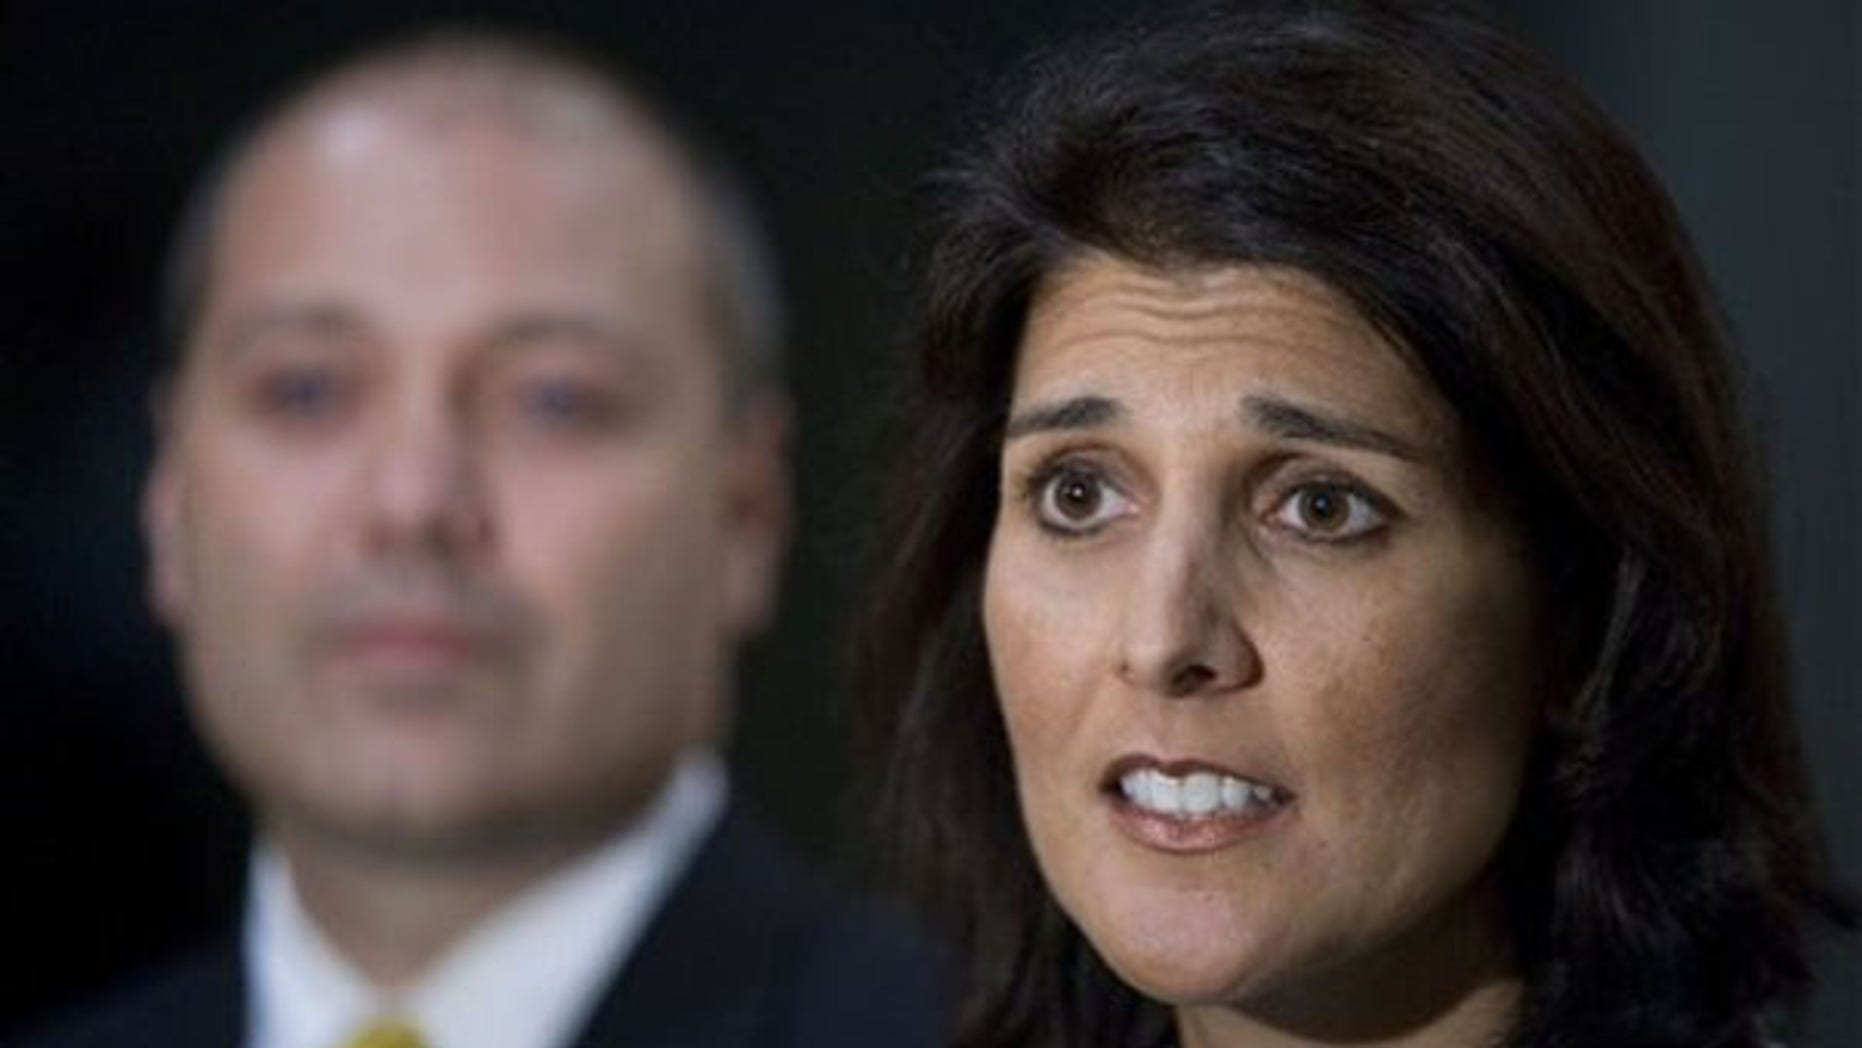 South Carolina state Rep. Nikki Haley talks about allegations of an affair in Greenville, S.C., May 24. She is joined by her husband Michael. (AP Photo)